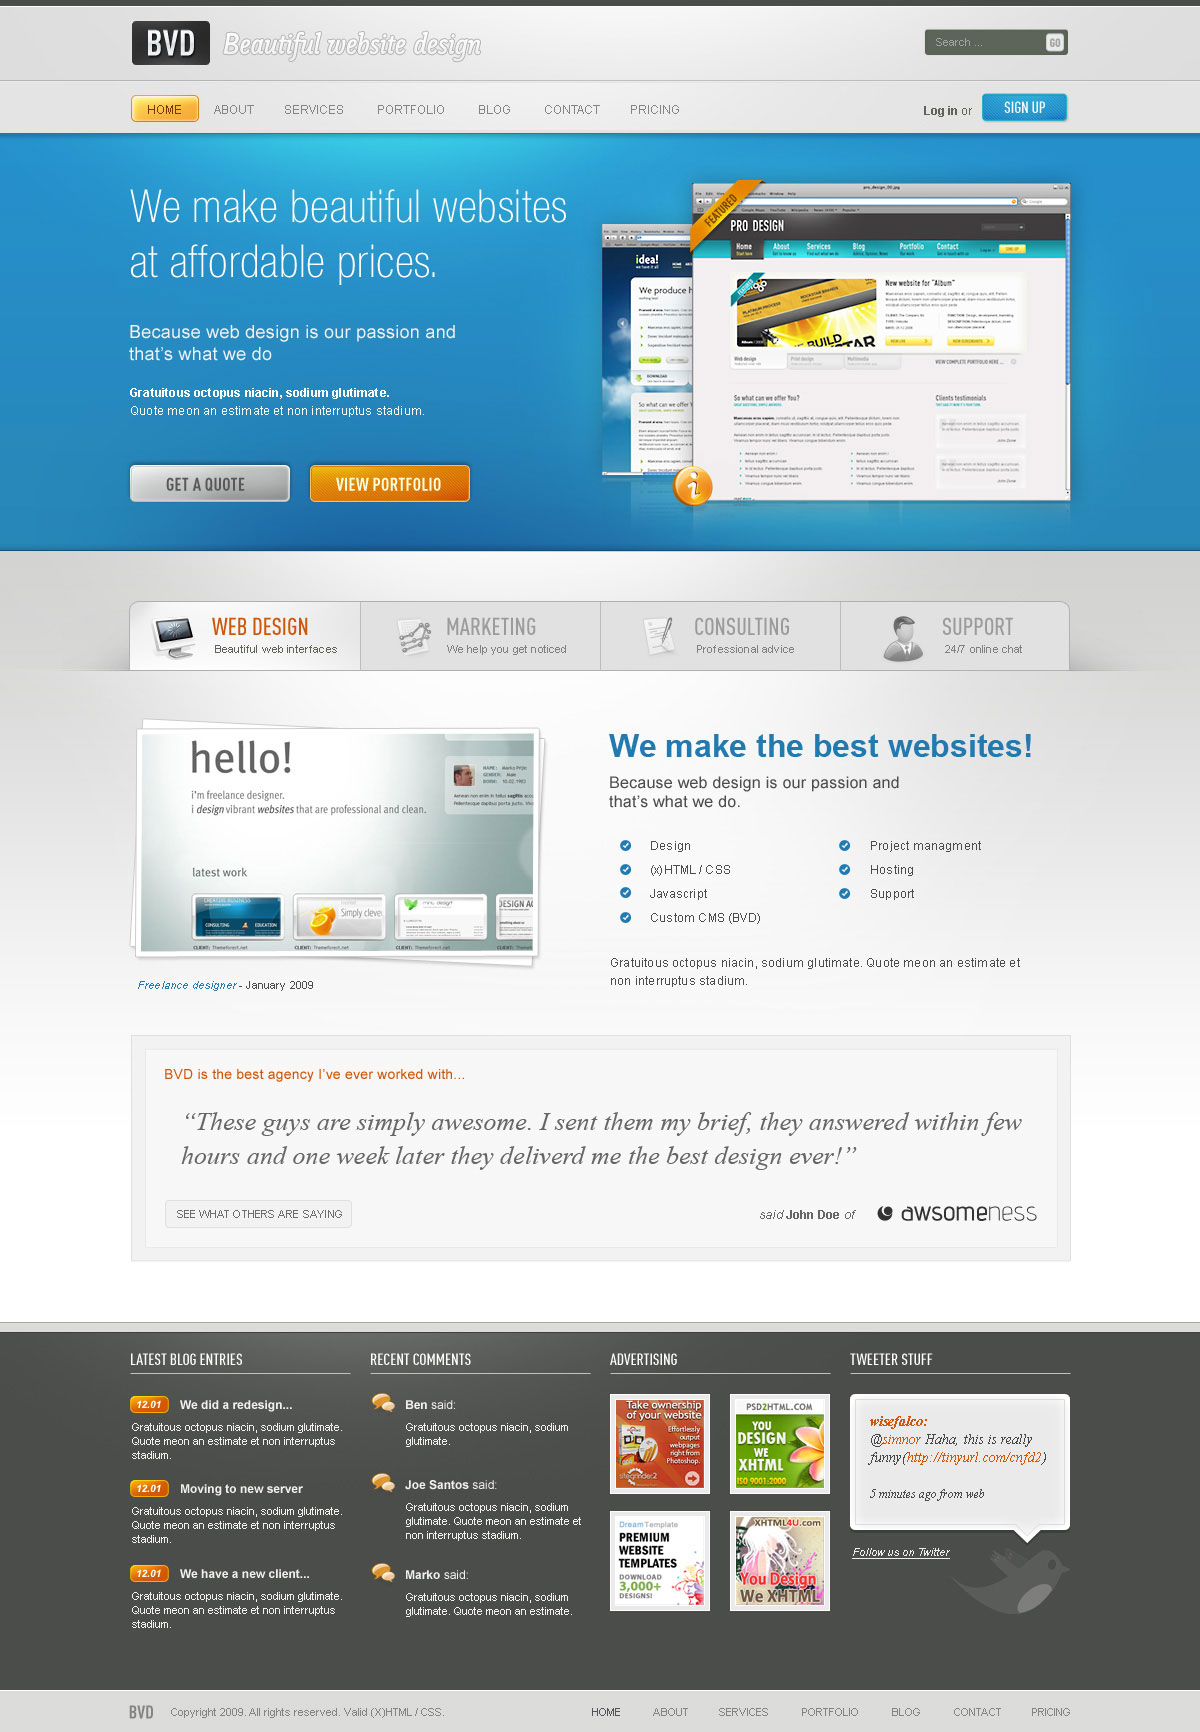 BVD - Beautiful Website Design - HTML